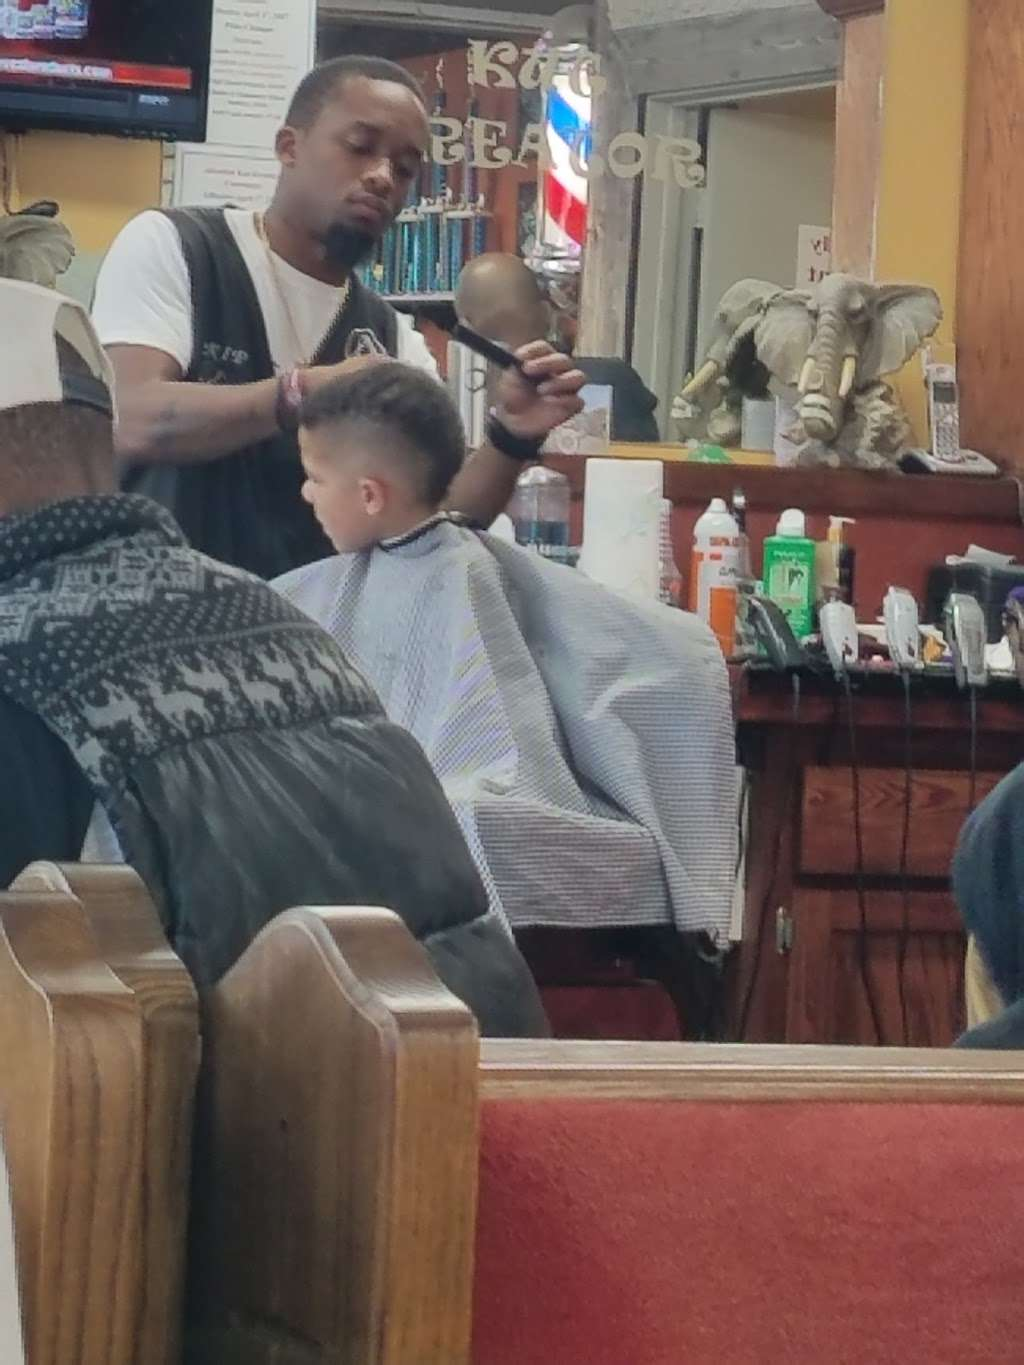 Kut Kreator Barber Shop - hair care  | Photo 2 of 4 | Address: 875 Albright Rd, Rock Hill, SC 29730, USA | Phone: (803) 980-1978